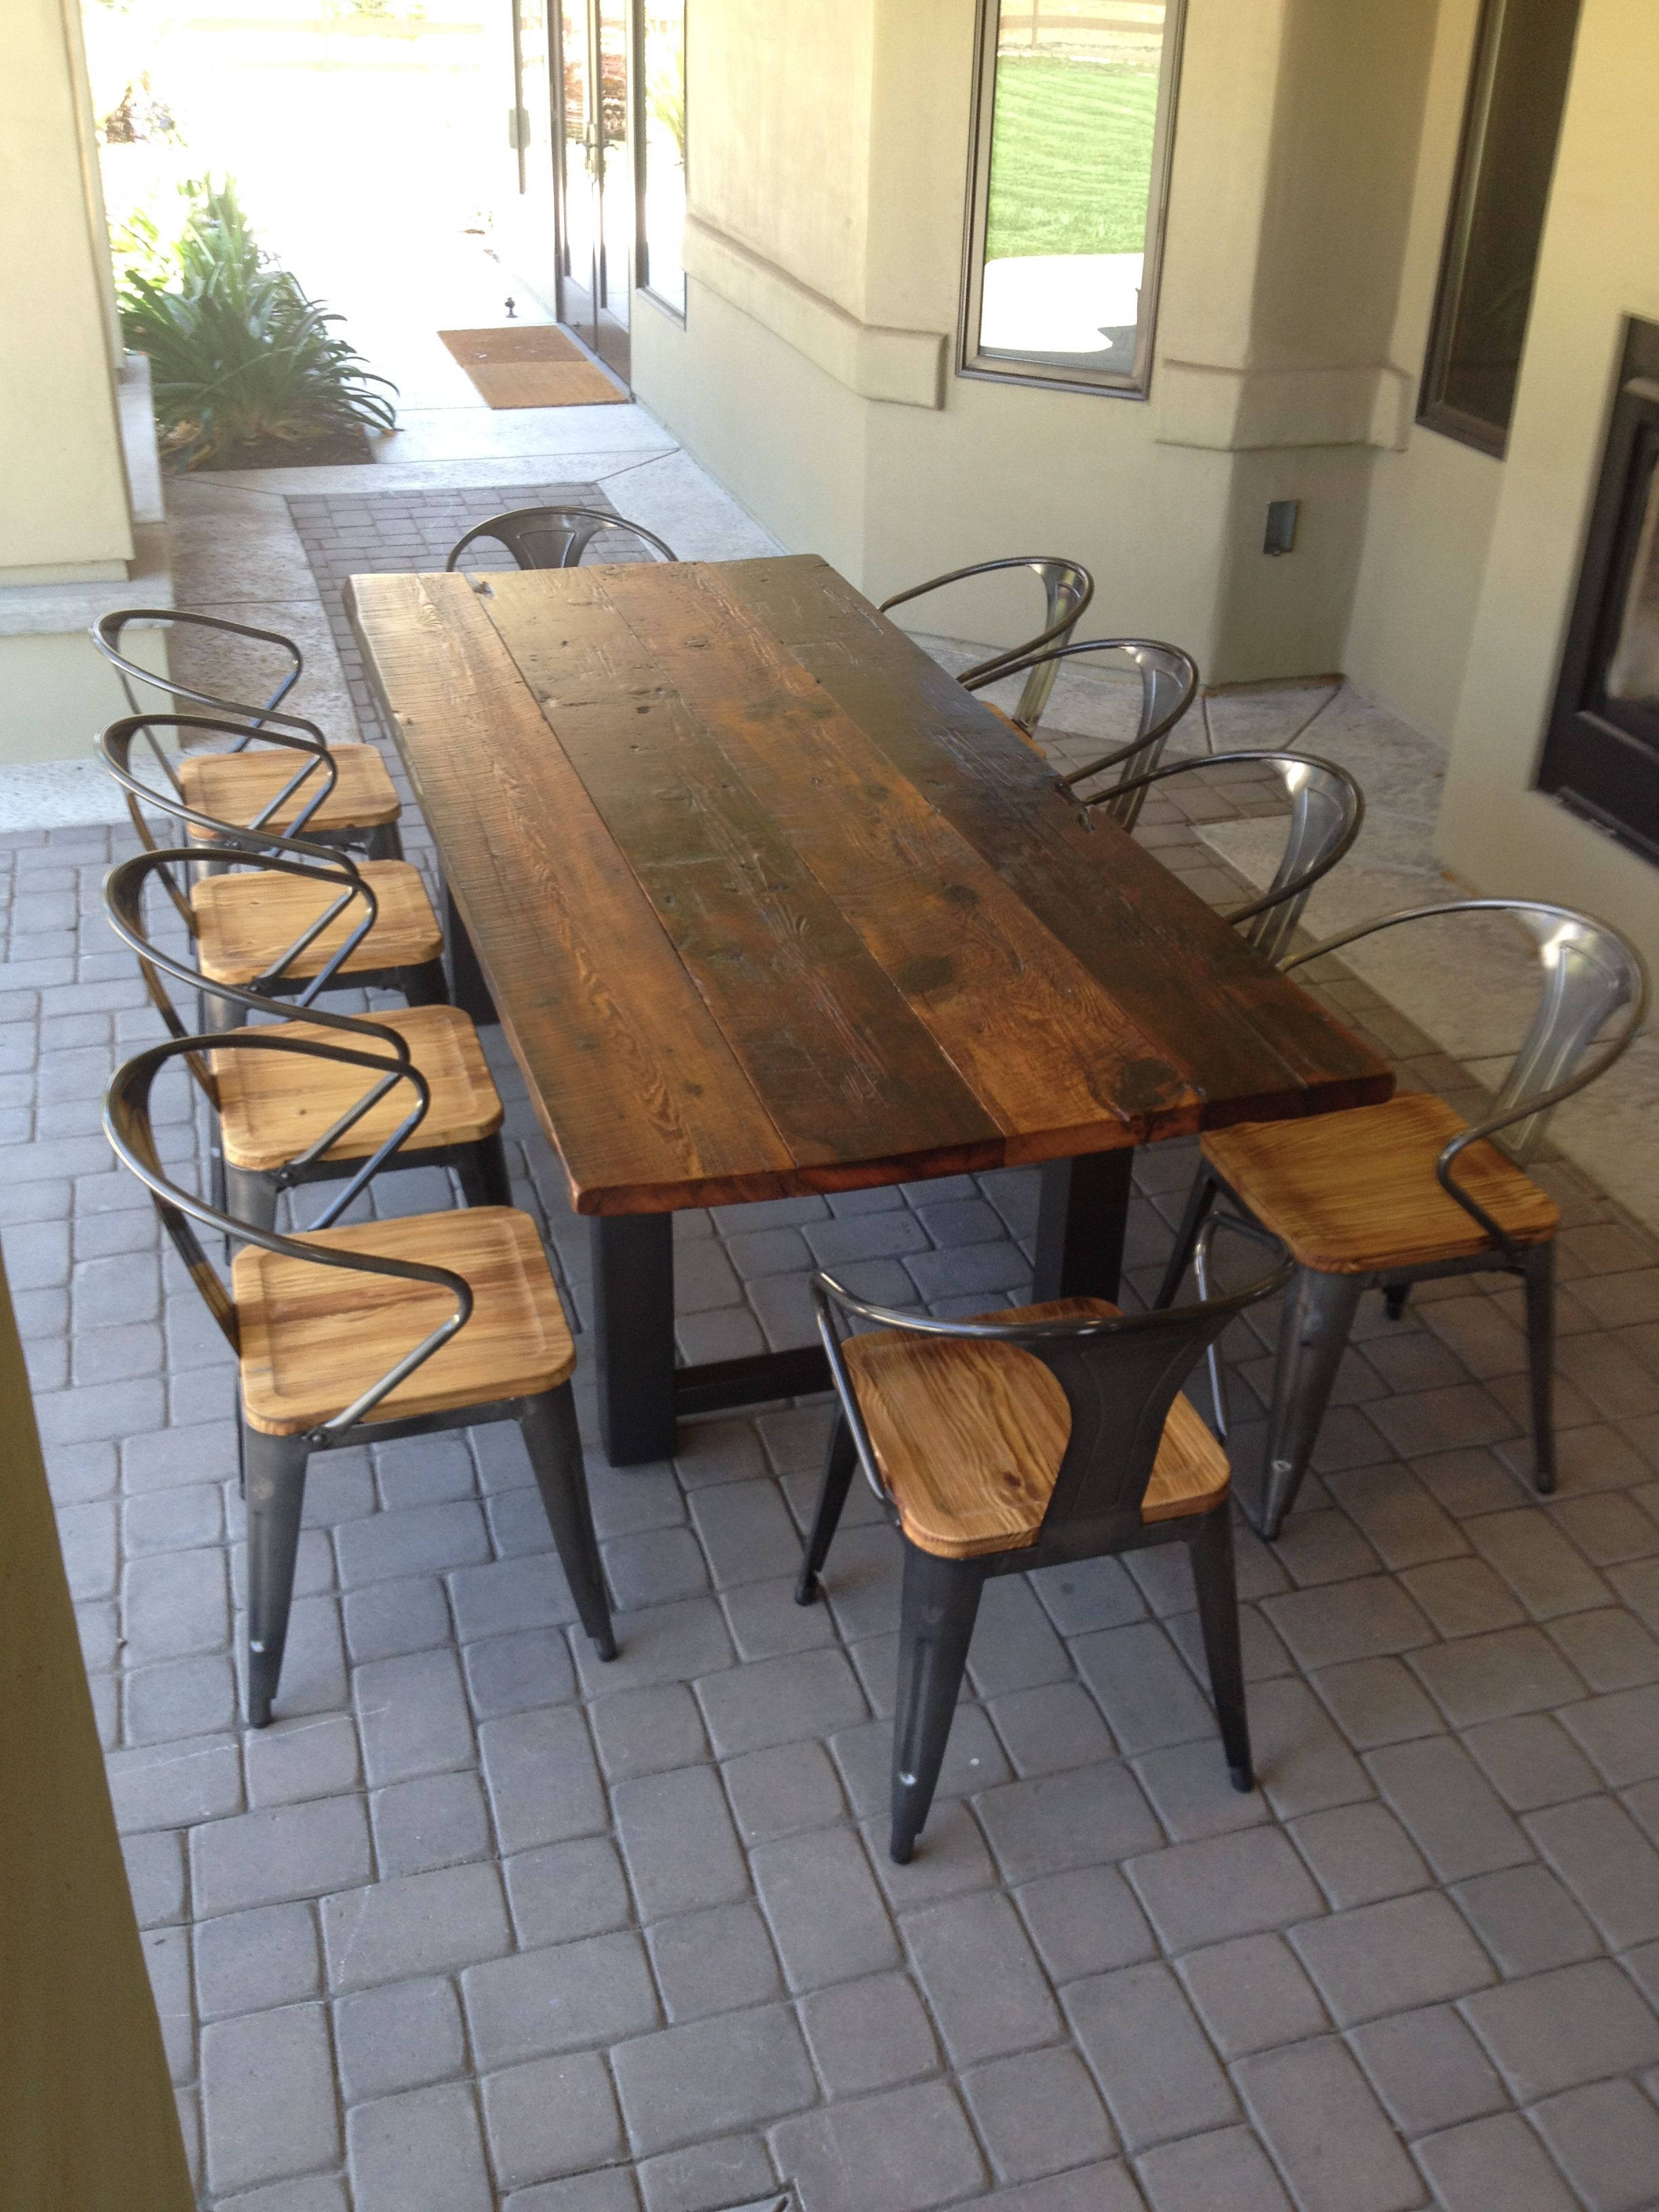 wood patio furniture table and chairs Reclaimed Wood and Steel Outdoor Dining Table 1 | The